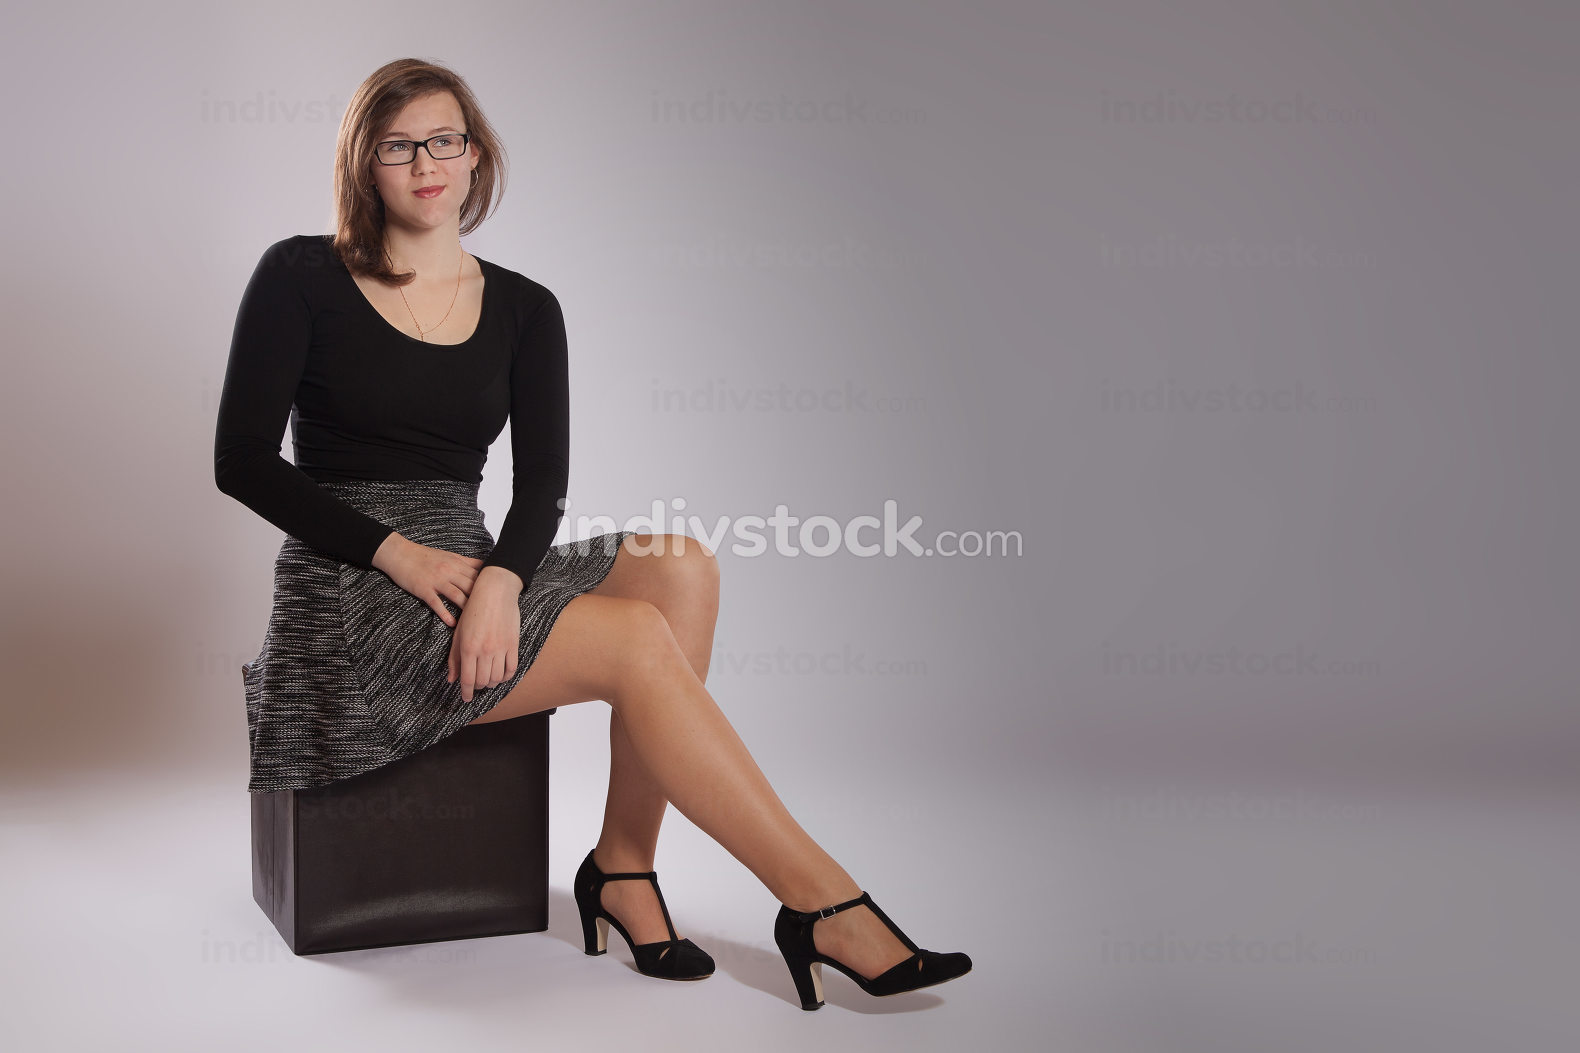 Young woman is sitting on a stool